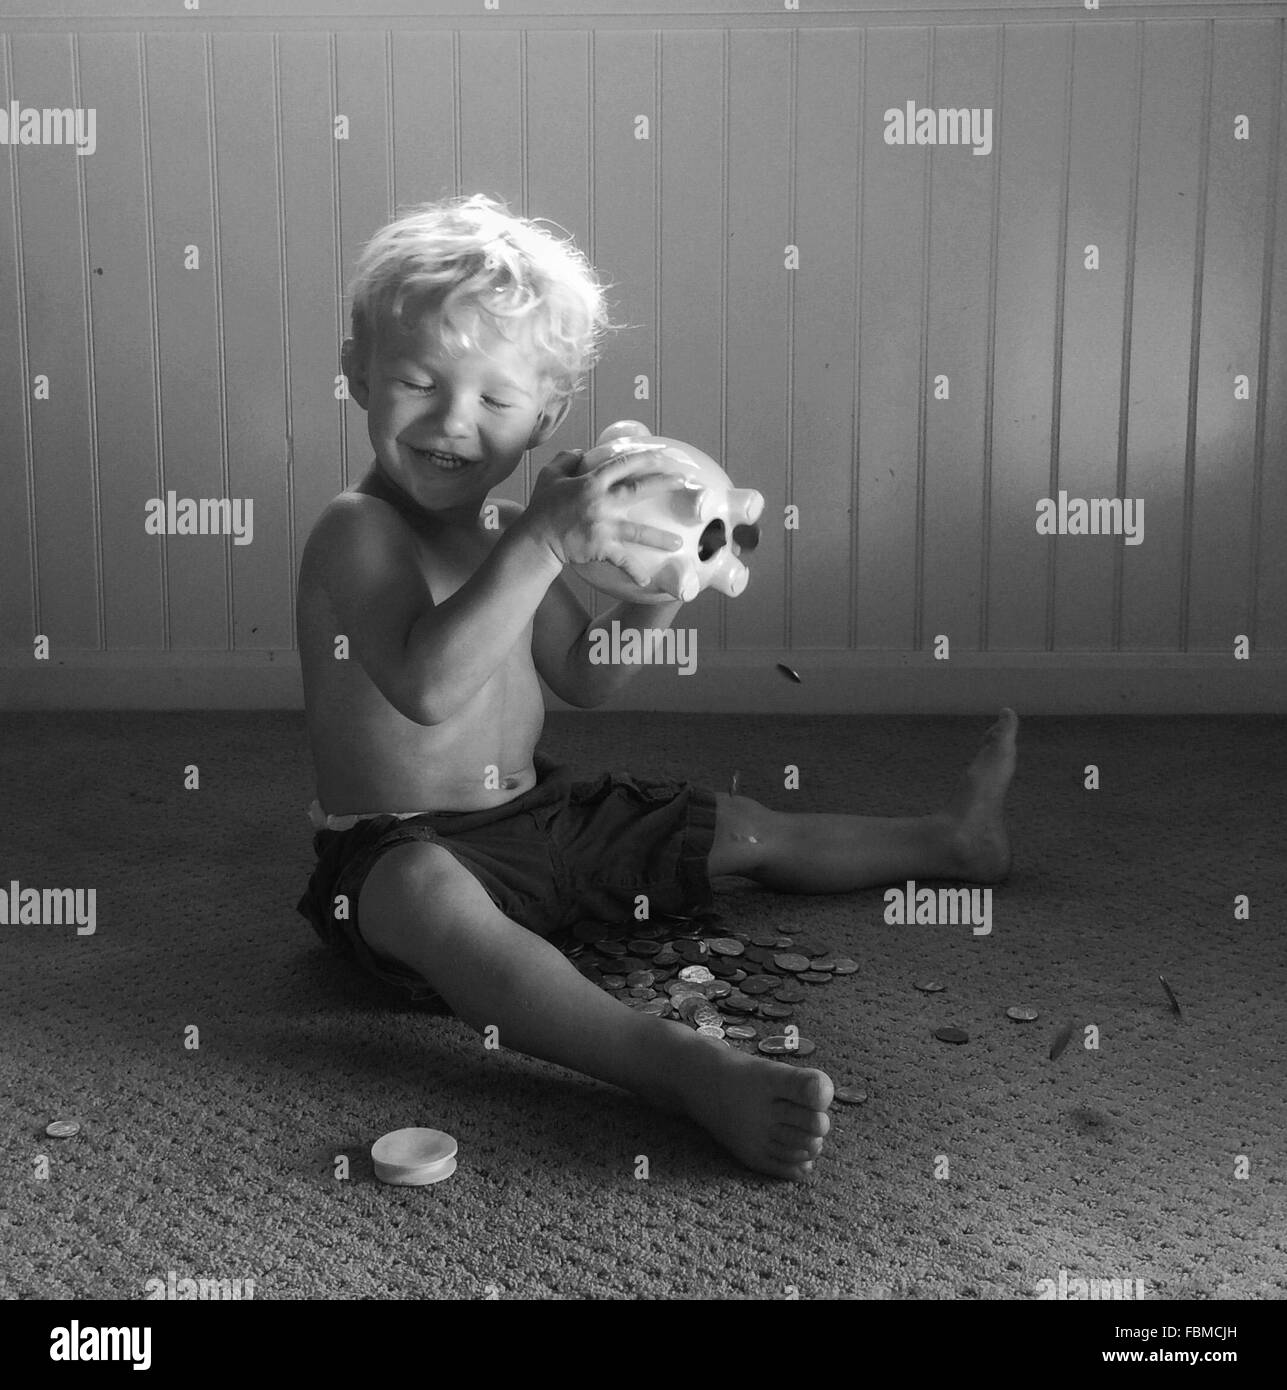 Boy shaking a piggy bank - Stock Image